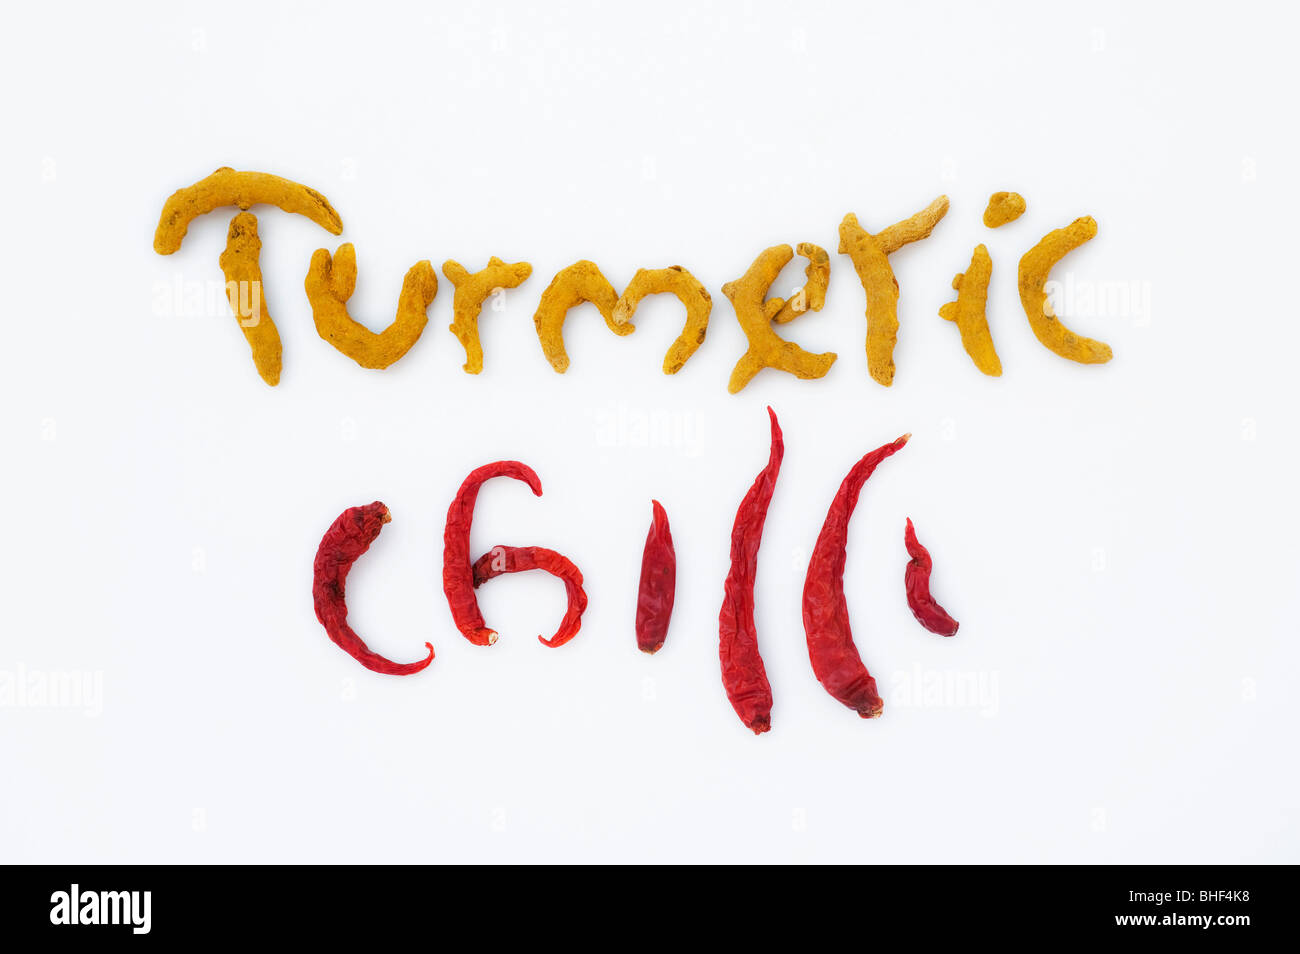 The word Turmeric and Chilli spelt in dried turmeric rhizomes and dried red chilli's on a white background - Stock Image